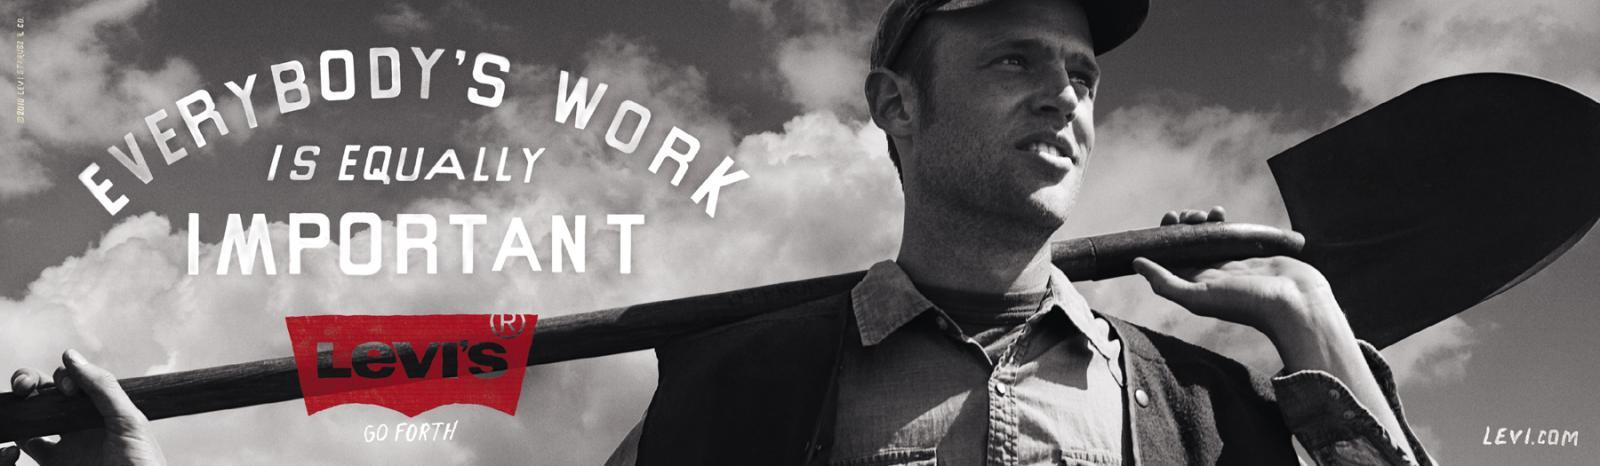 Levi's Outdoor Ad -  Everybody's work is equally important